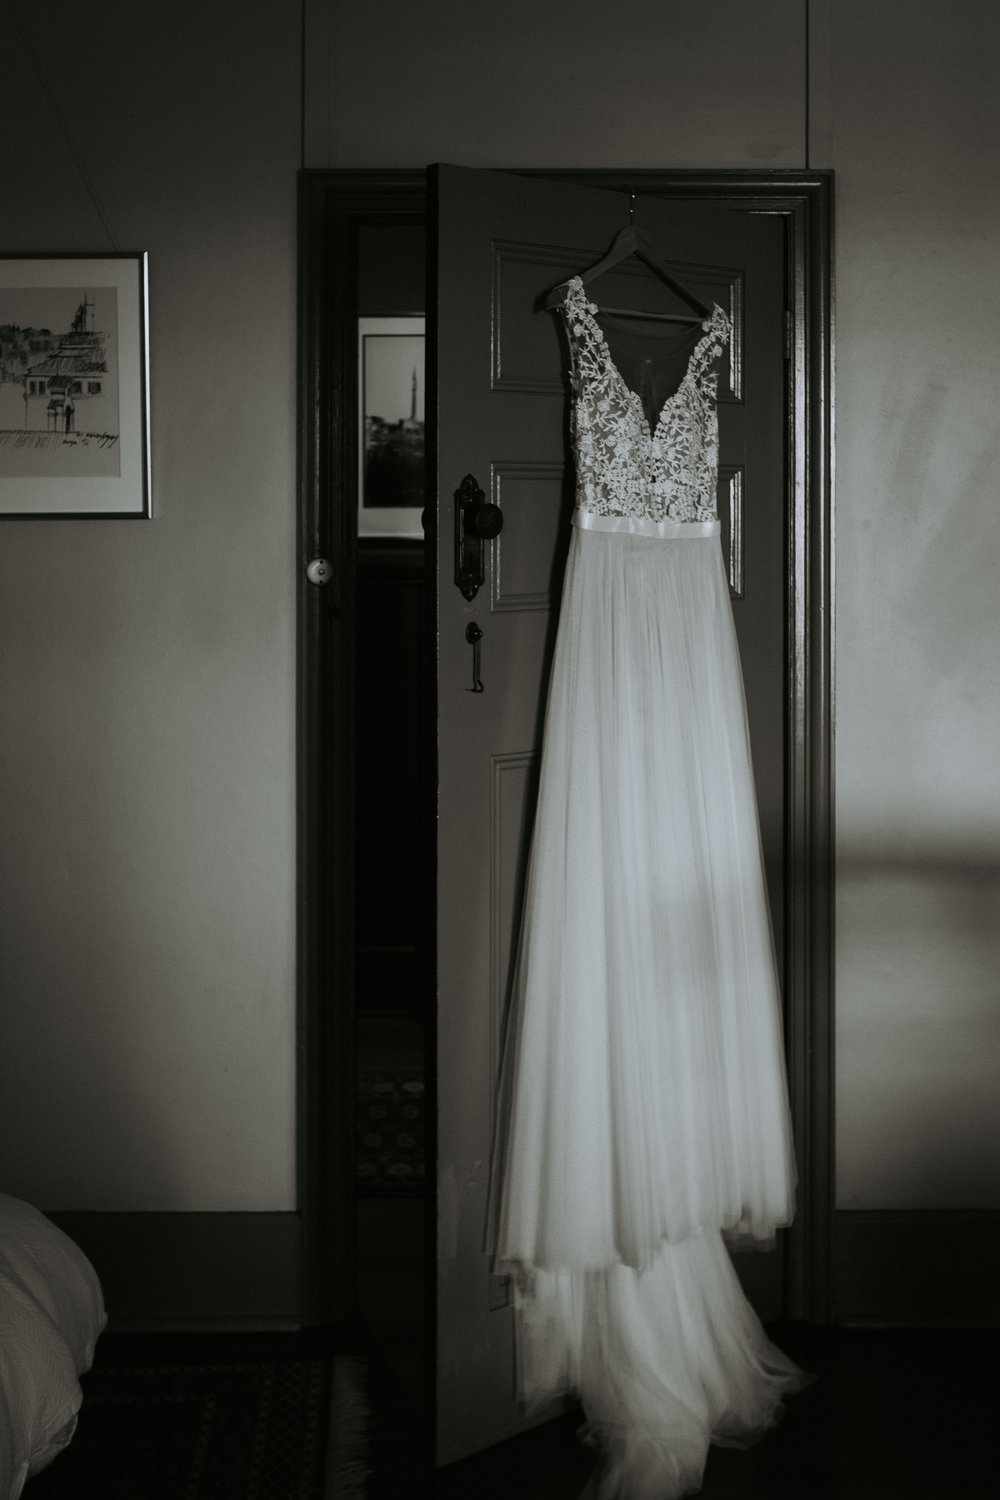 Wedding dress photo. South Coast wedding photography